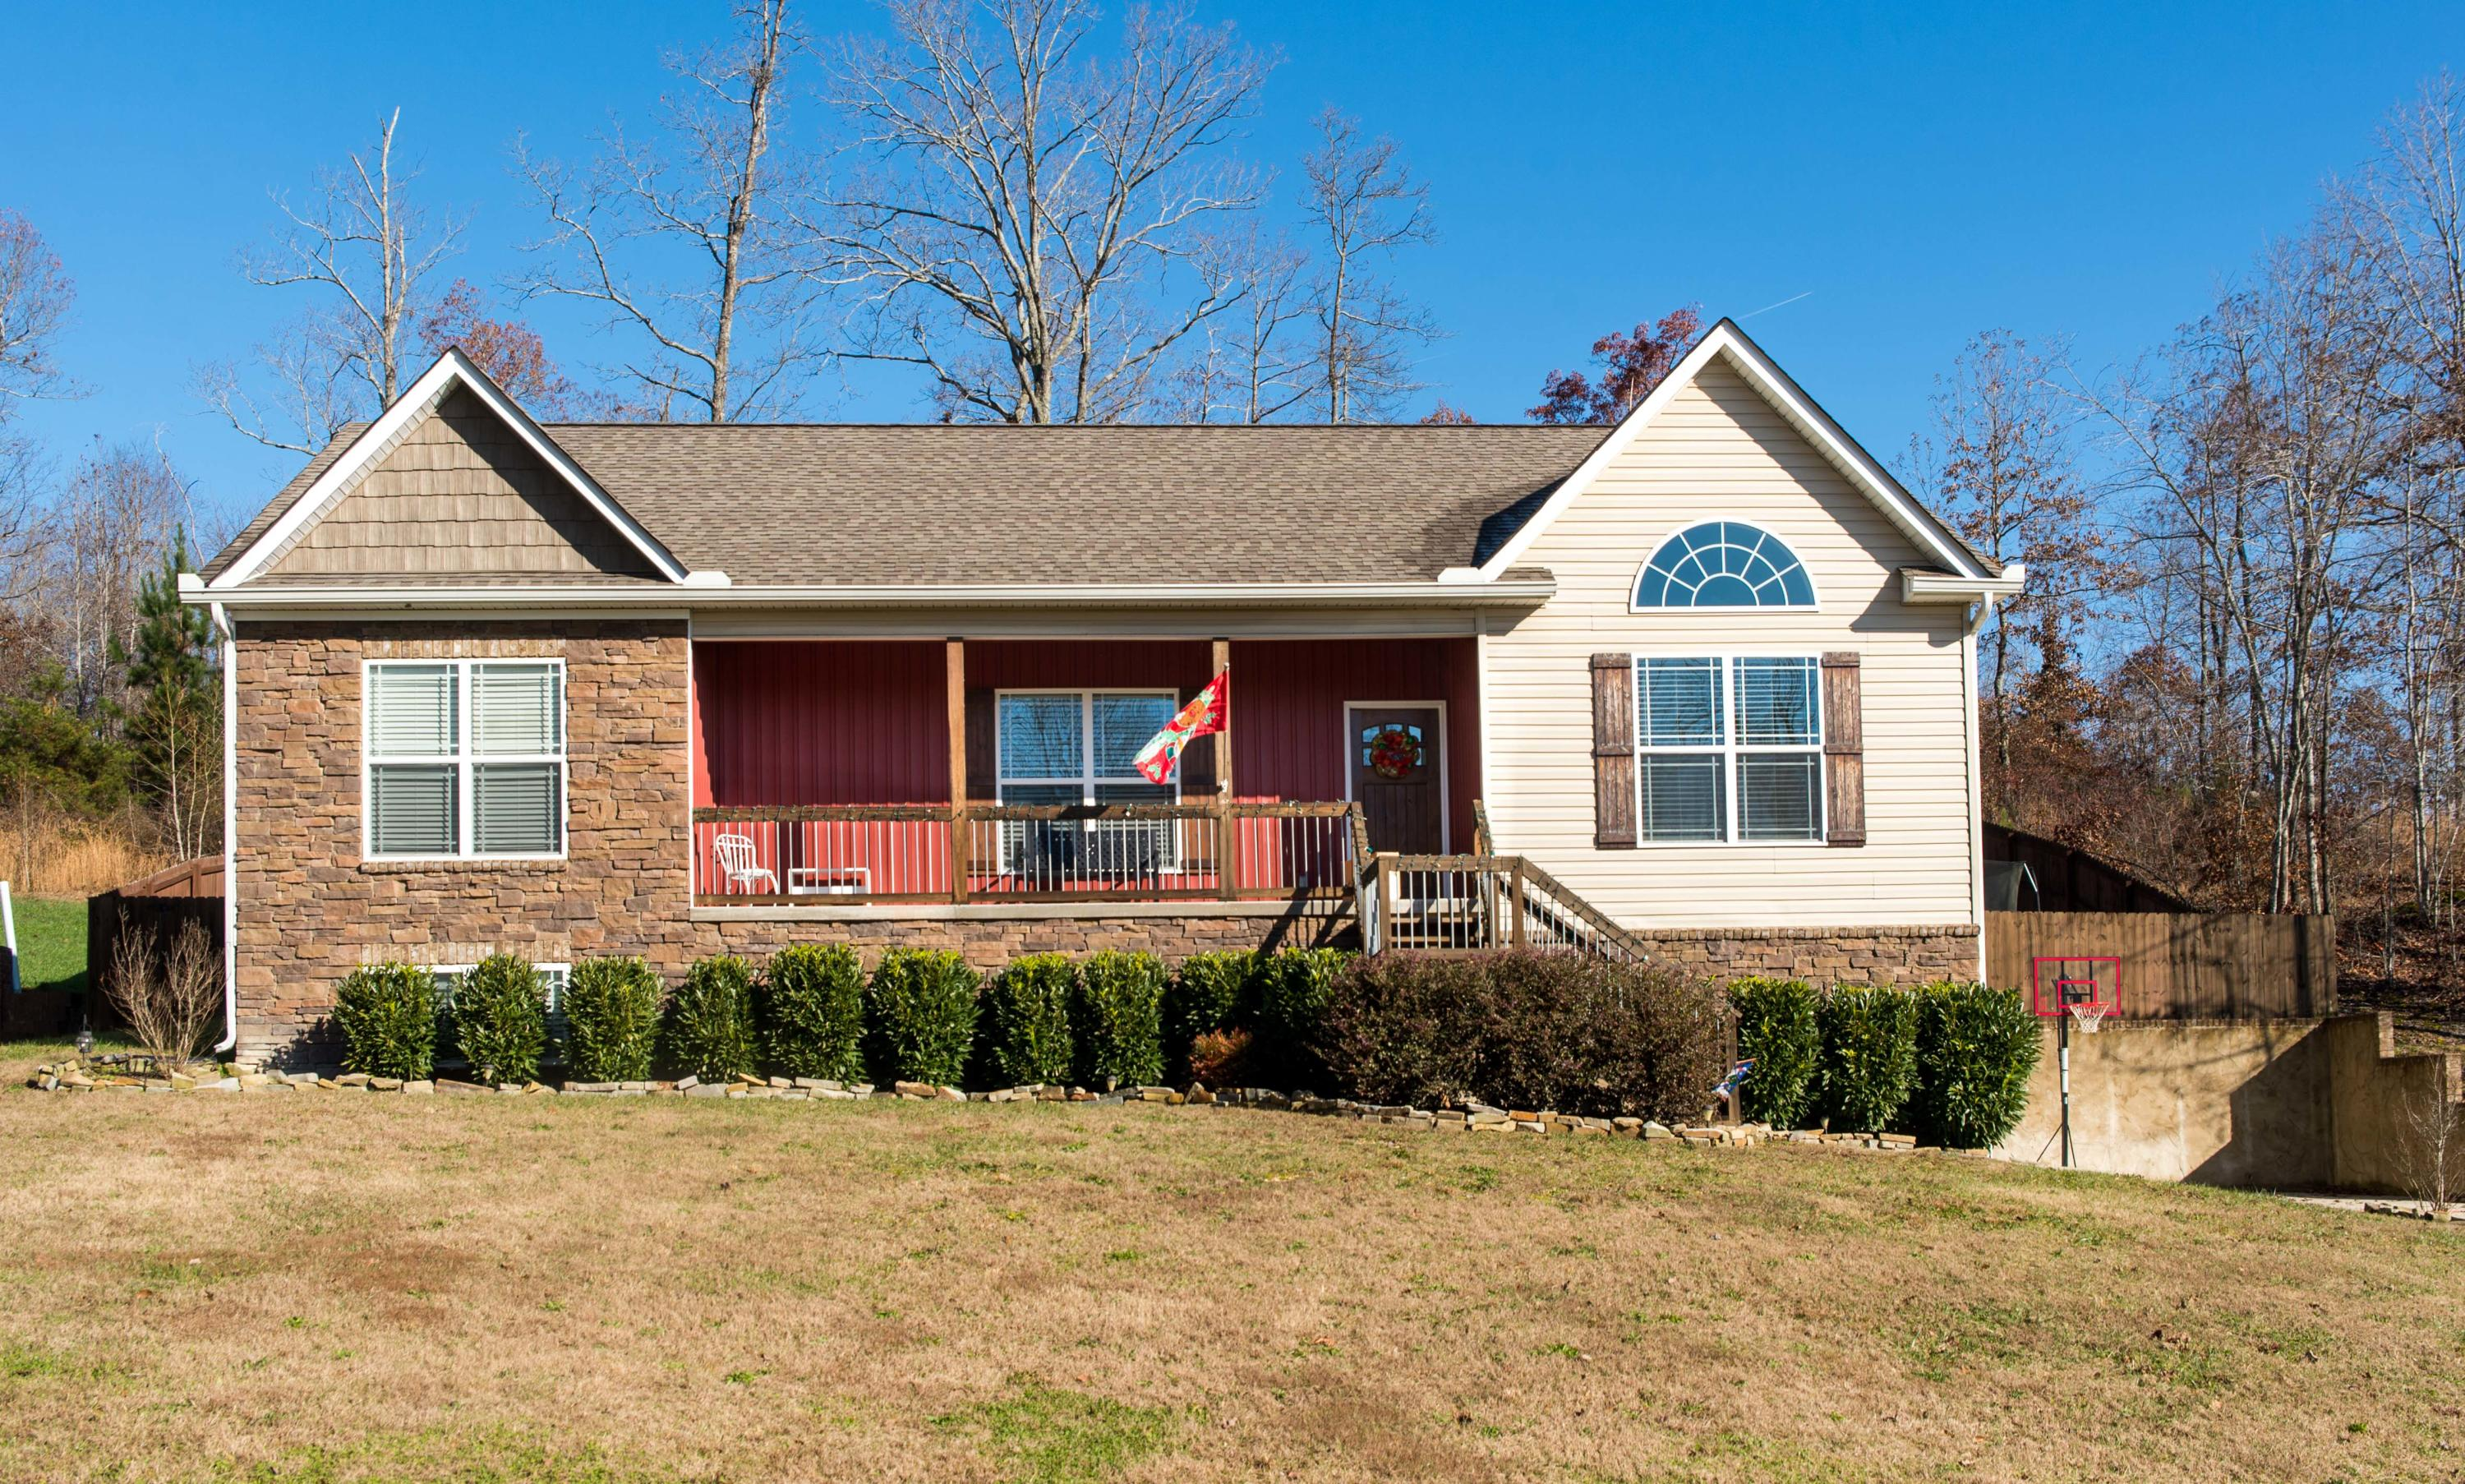 338 Harvest Ct, Soddy Daisy, TN 37379